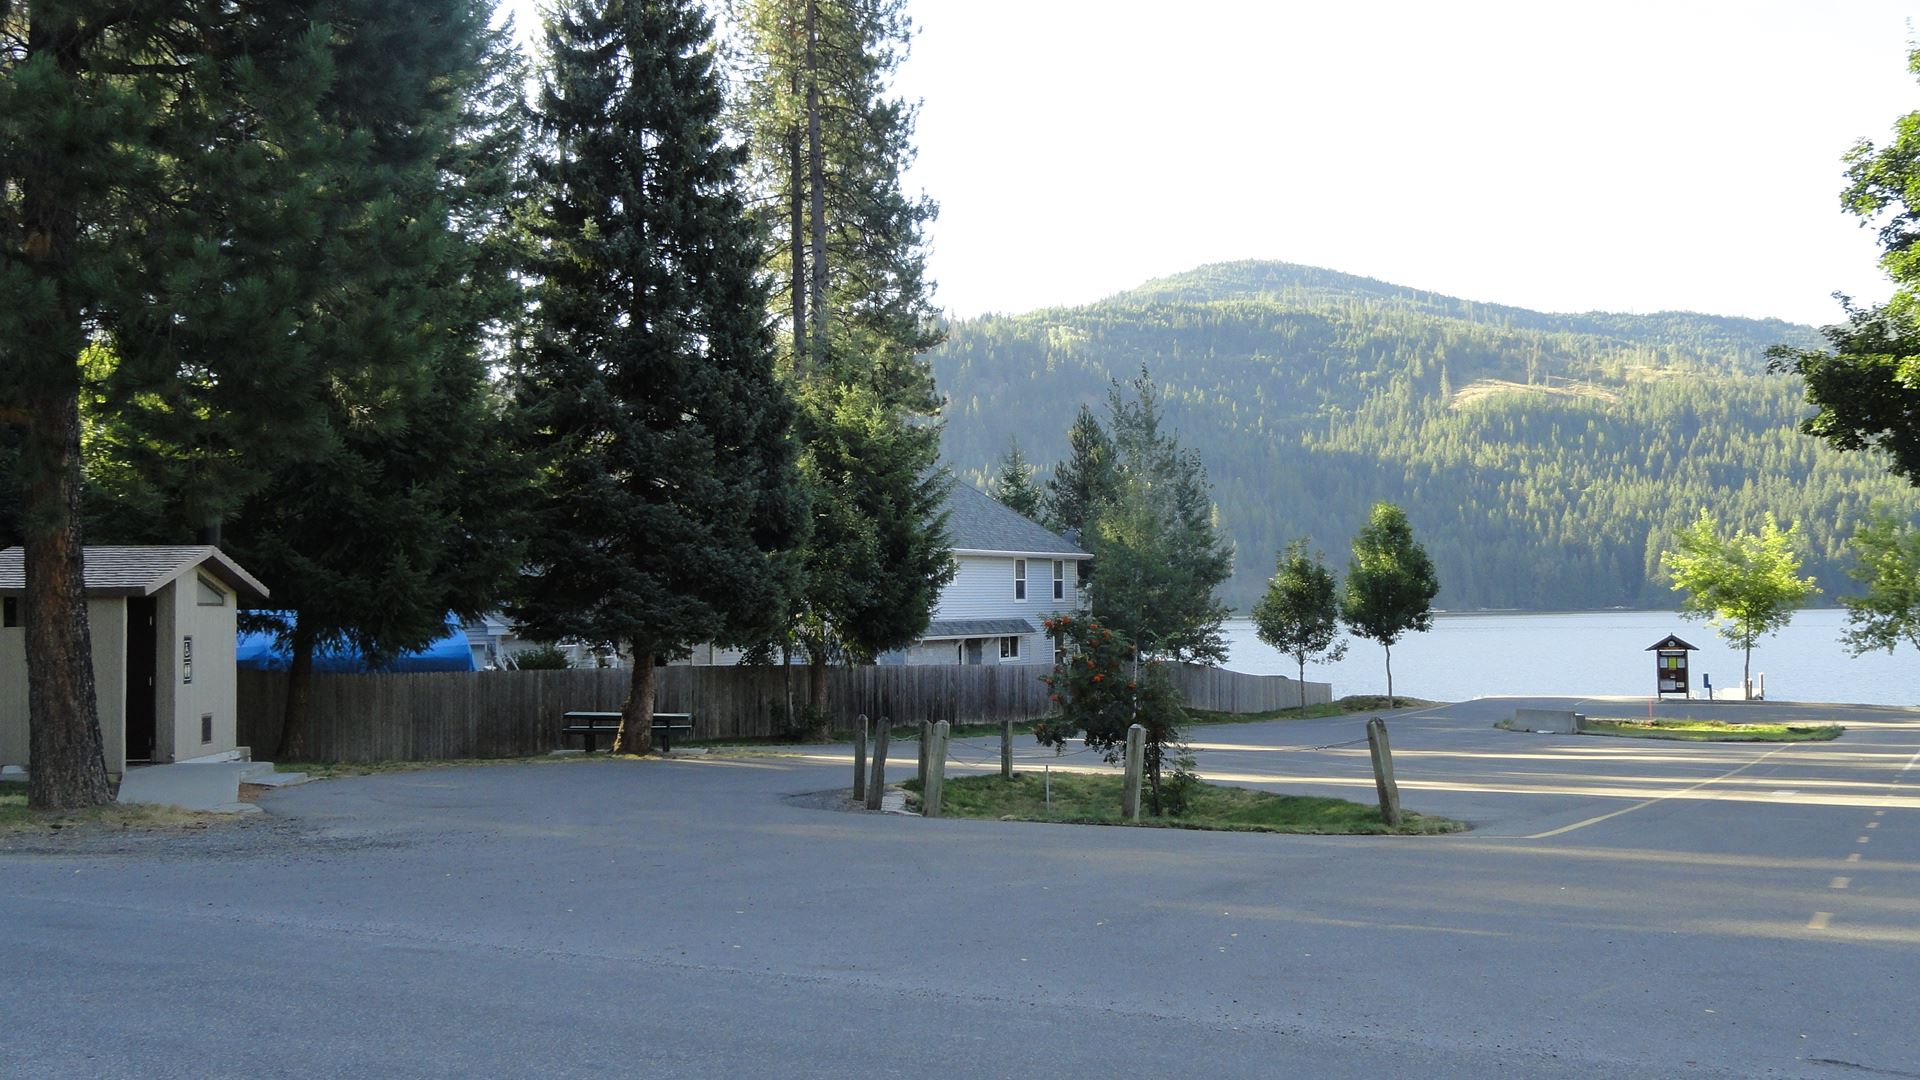 Parking lot beside lake